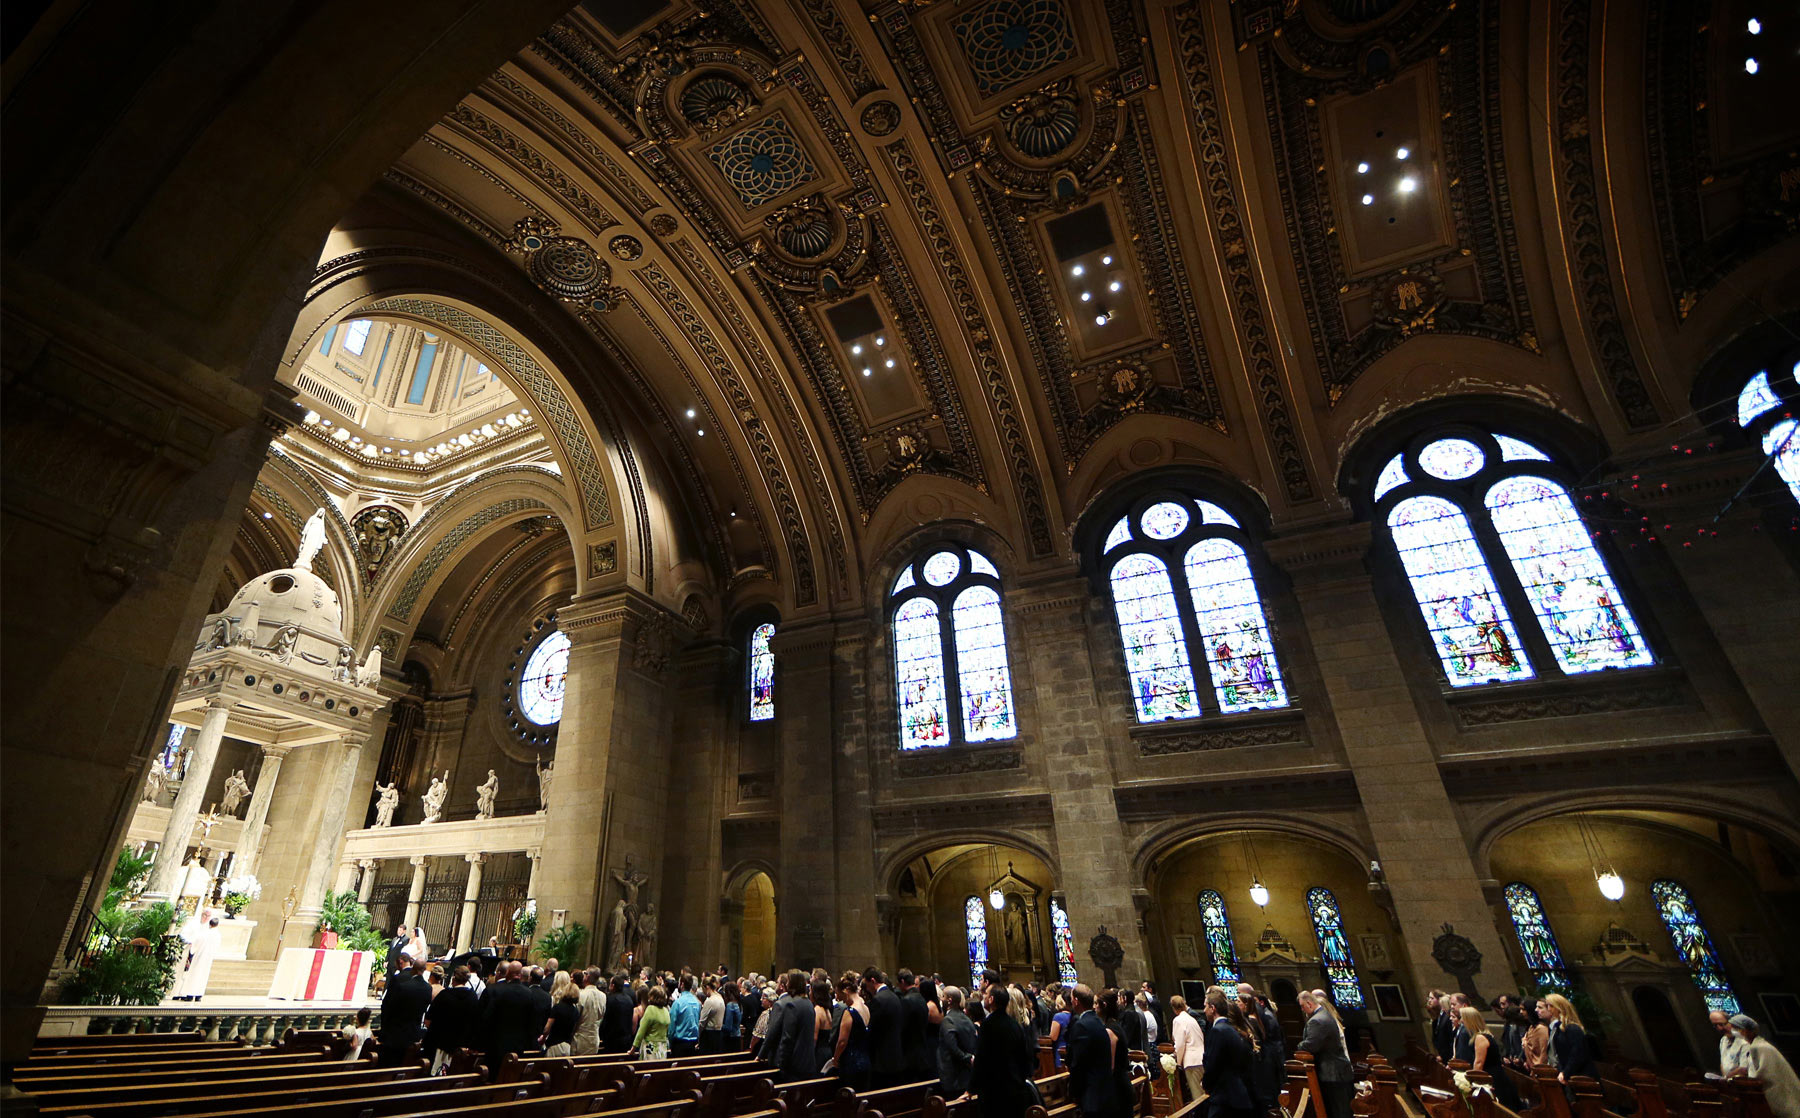 11-Minneapolis-Minnesota-Wedding-Photography-by-Vick-Photography-Downtown-Basilica-of-St-Marys-Church-Ceremony-Megan-and-Andrew.jpg